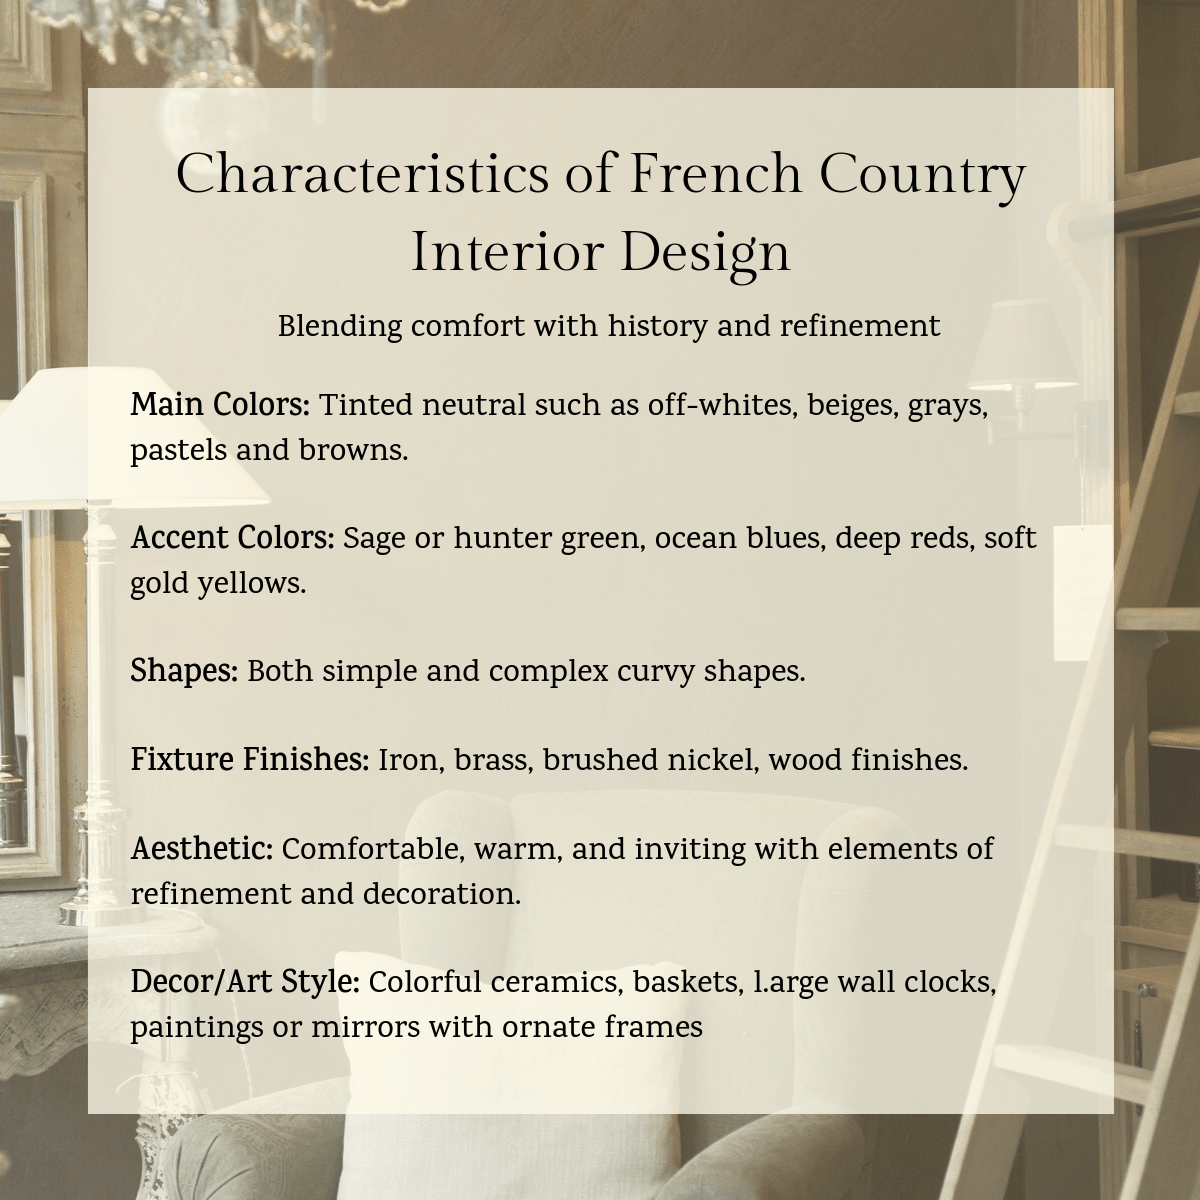 French Country Interior Design Characteristics